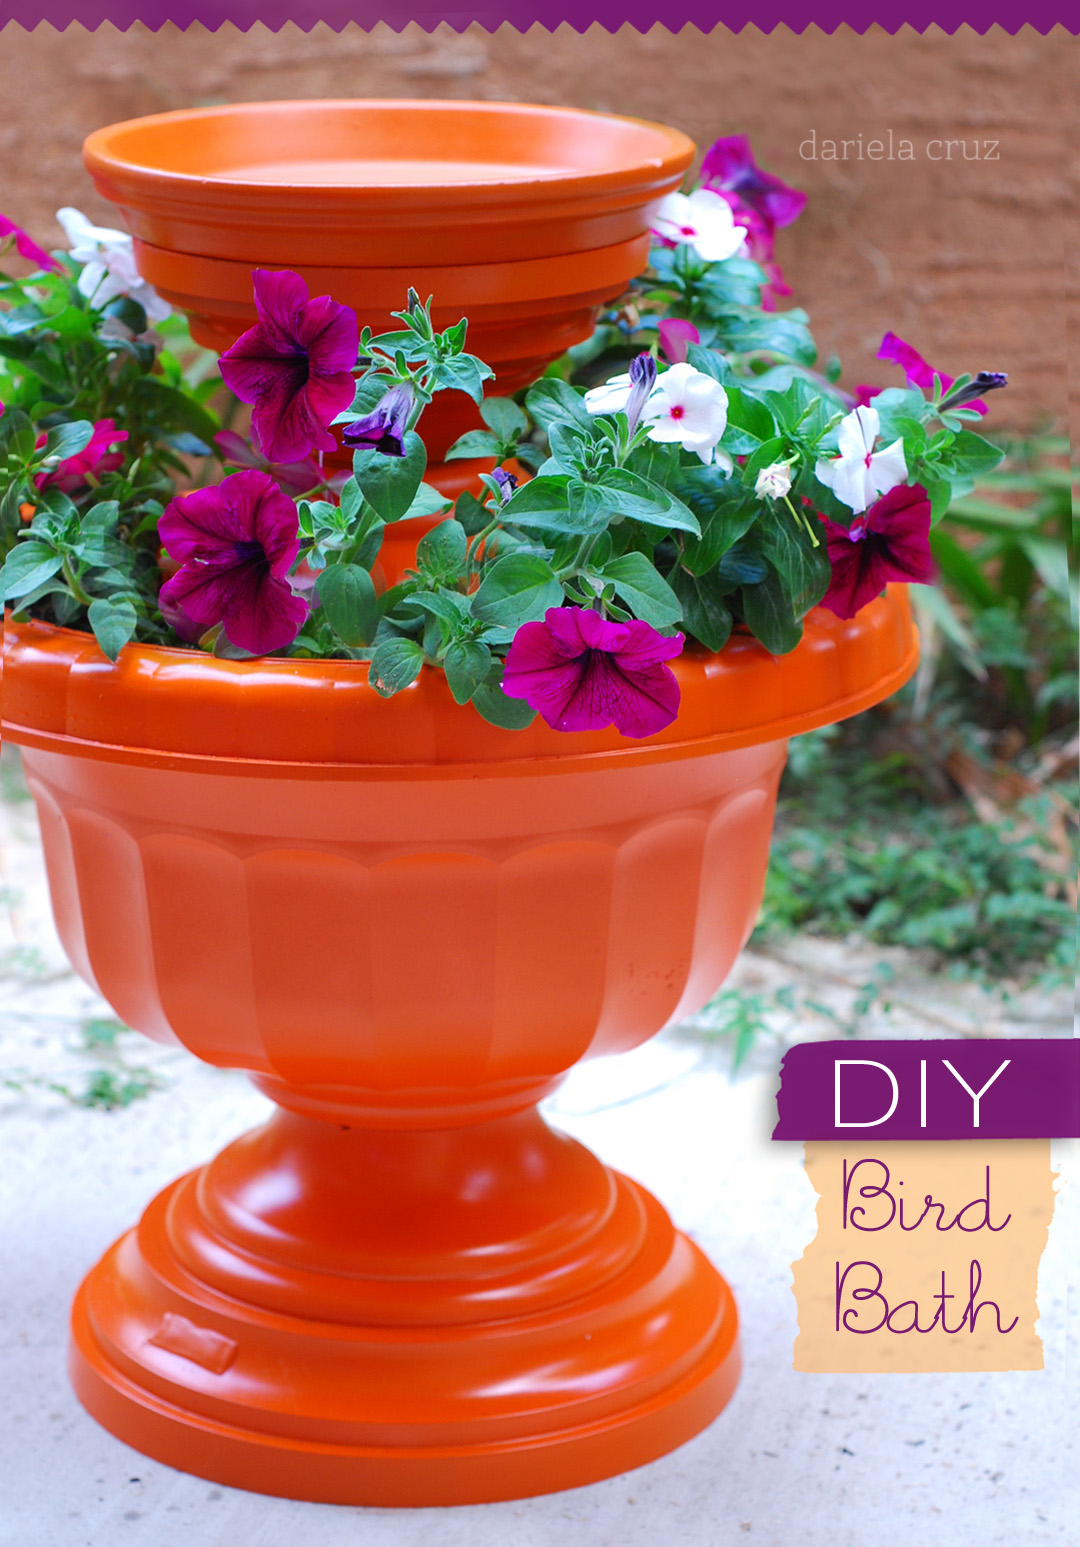 mami talks diy bird bath